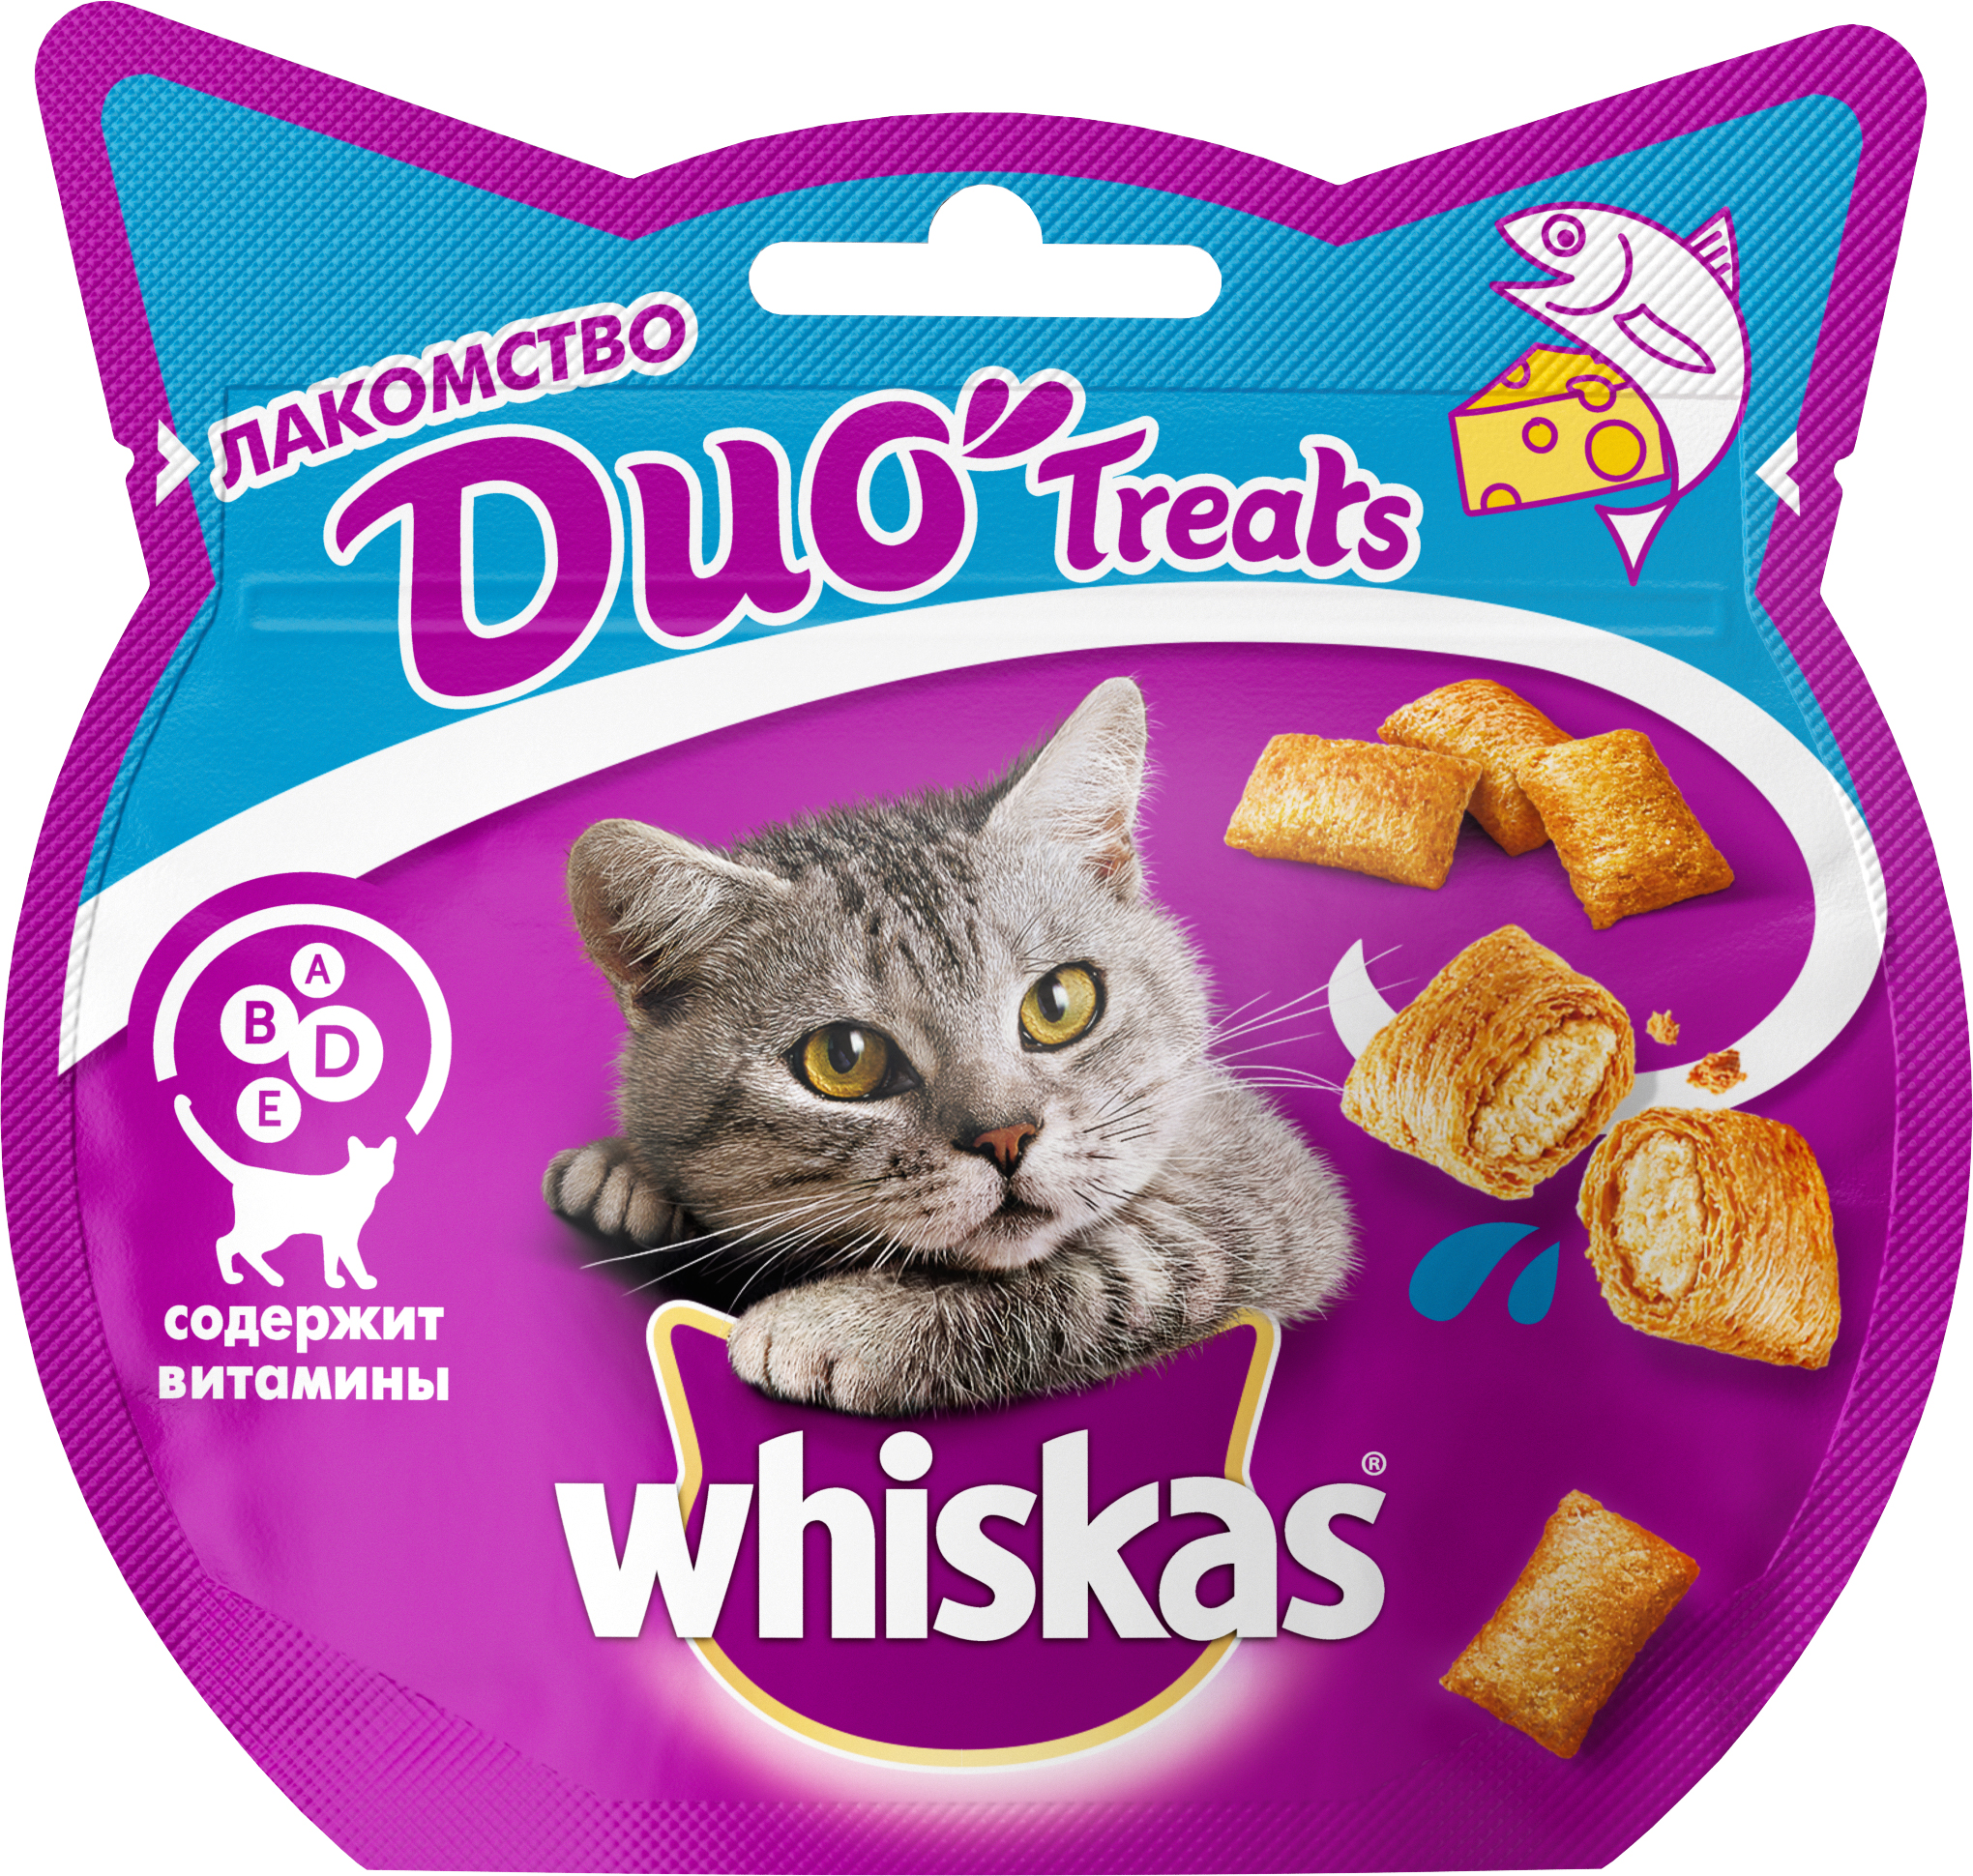 Лакомство для кошек Whiskas Du- Treats, c лососем и сыром, 40 г whiskas temptations hearty beef flavour treats for cats